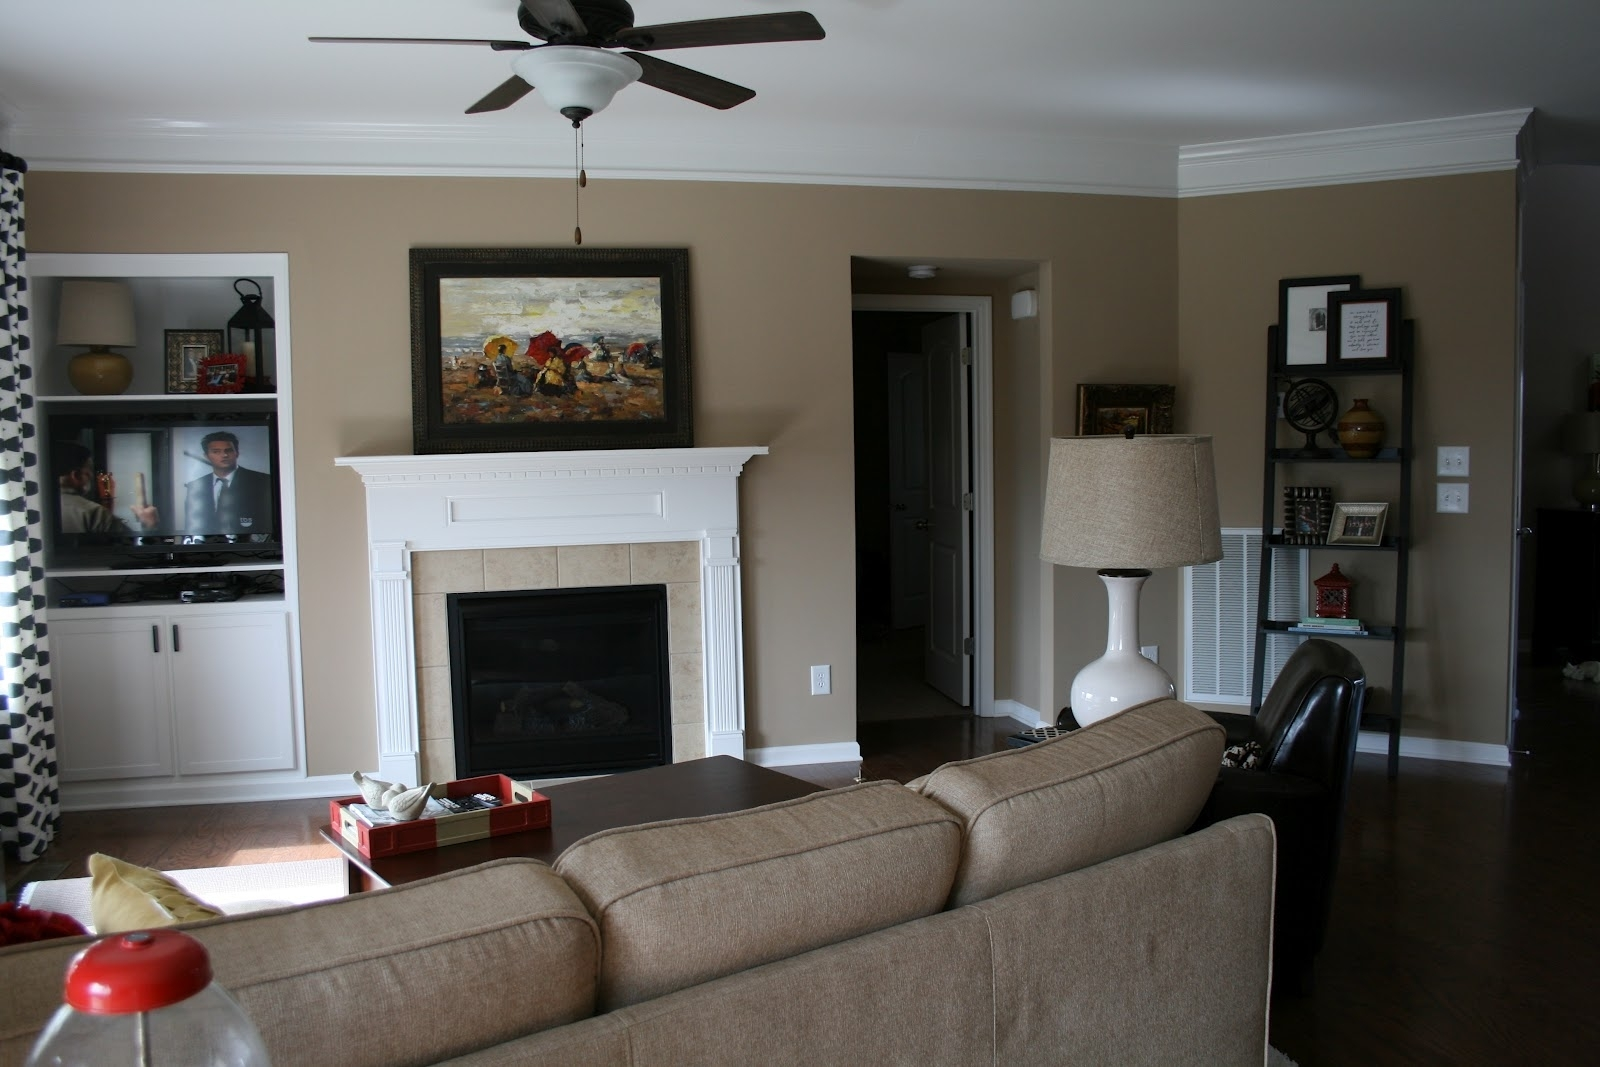 Accent Wall Accent Wall Ideas For Small Living Room (View 2 of 15)